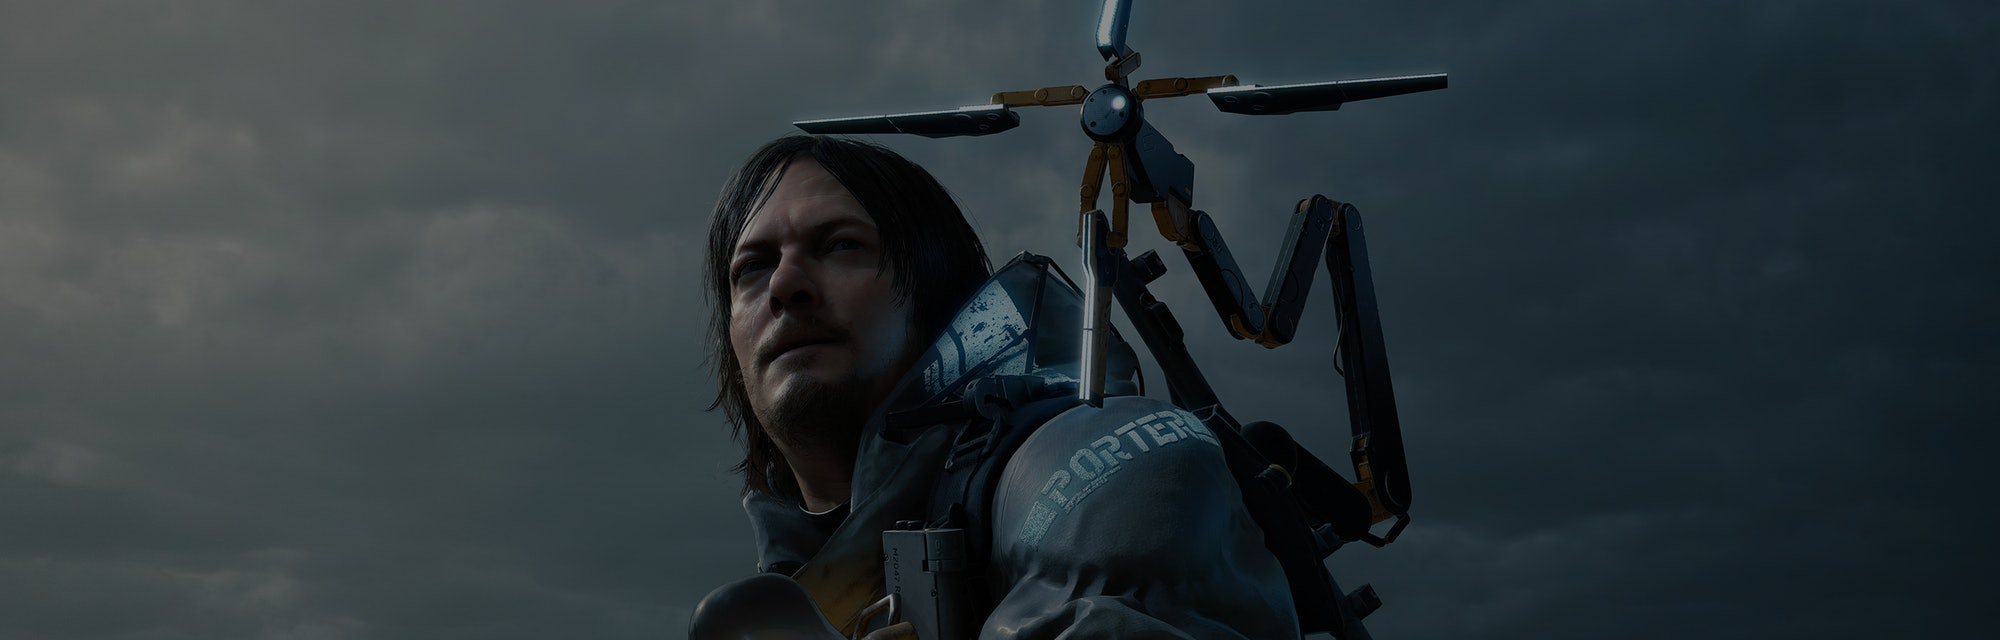 A screencap of the main character from the game Death Stranding.